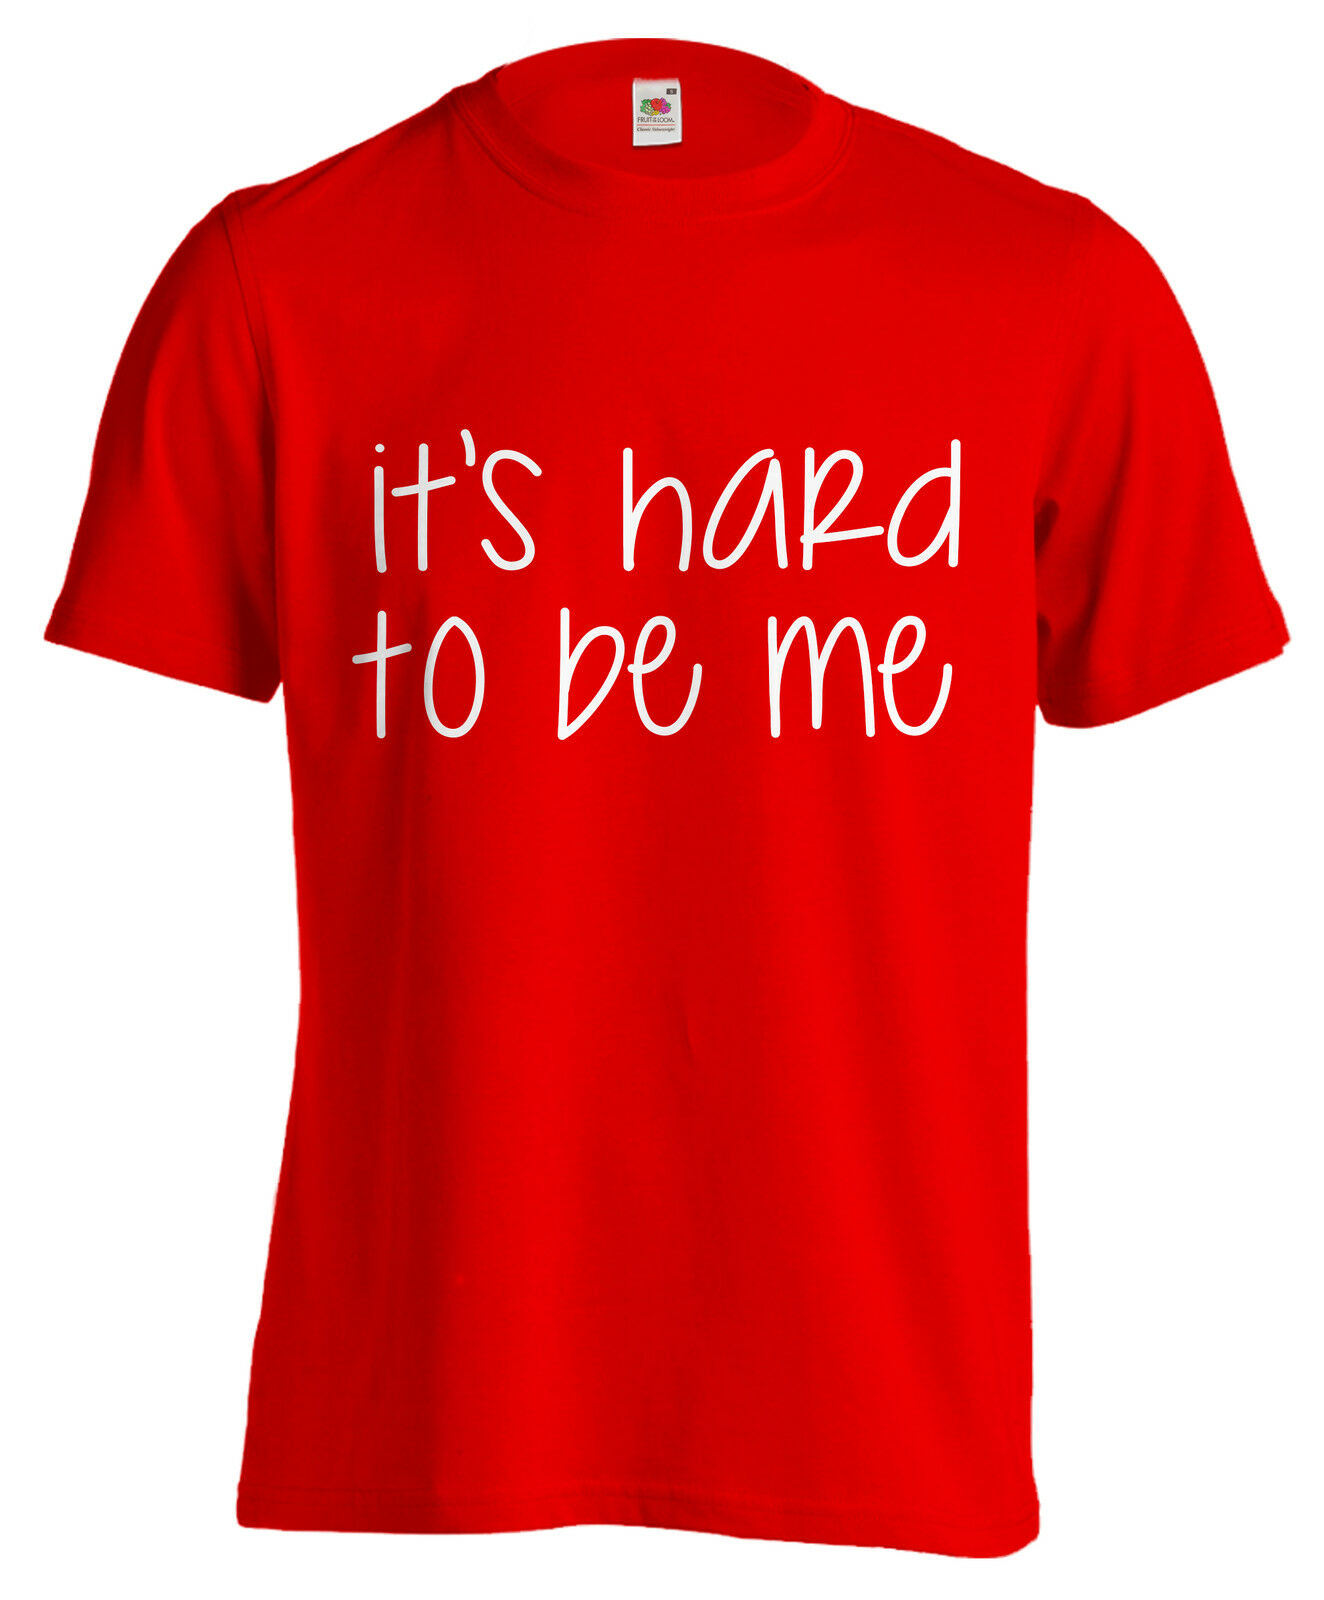 T-SHIRT cool IT'S HARD TO BE ME maglietta 100% cool T-SHIRT funny uomo divertente moda 9a5579